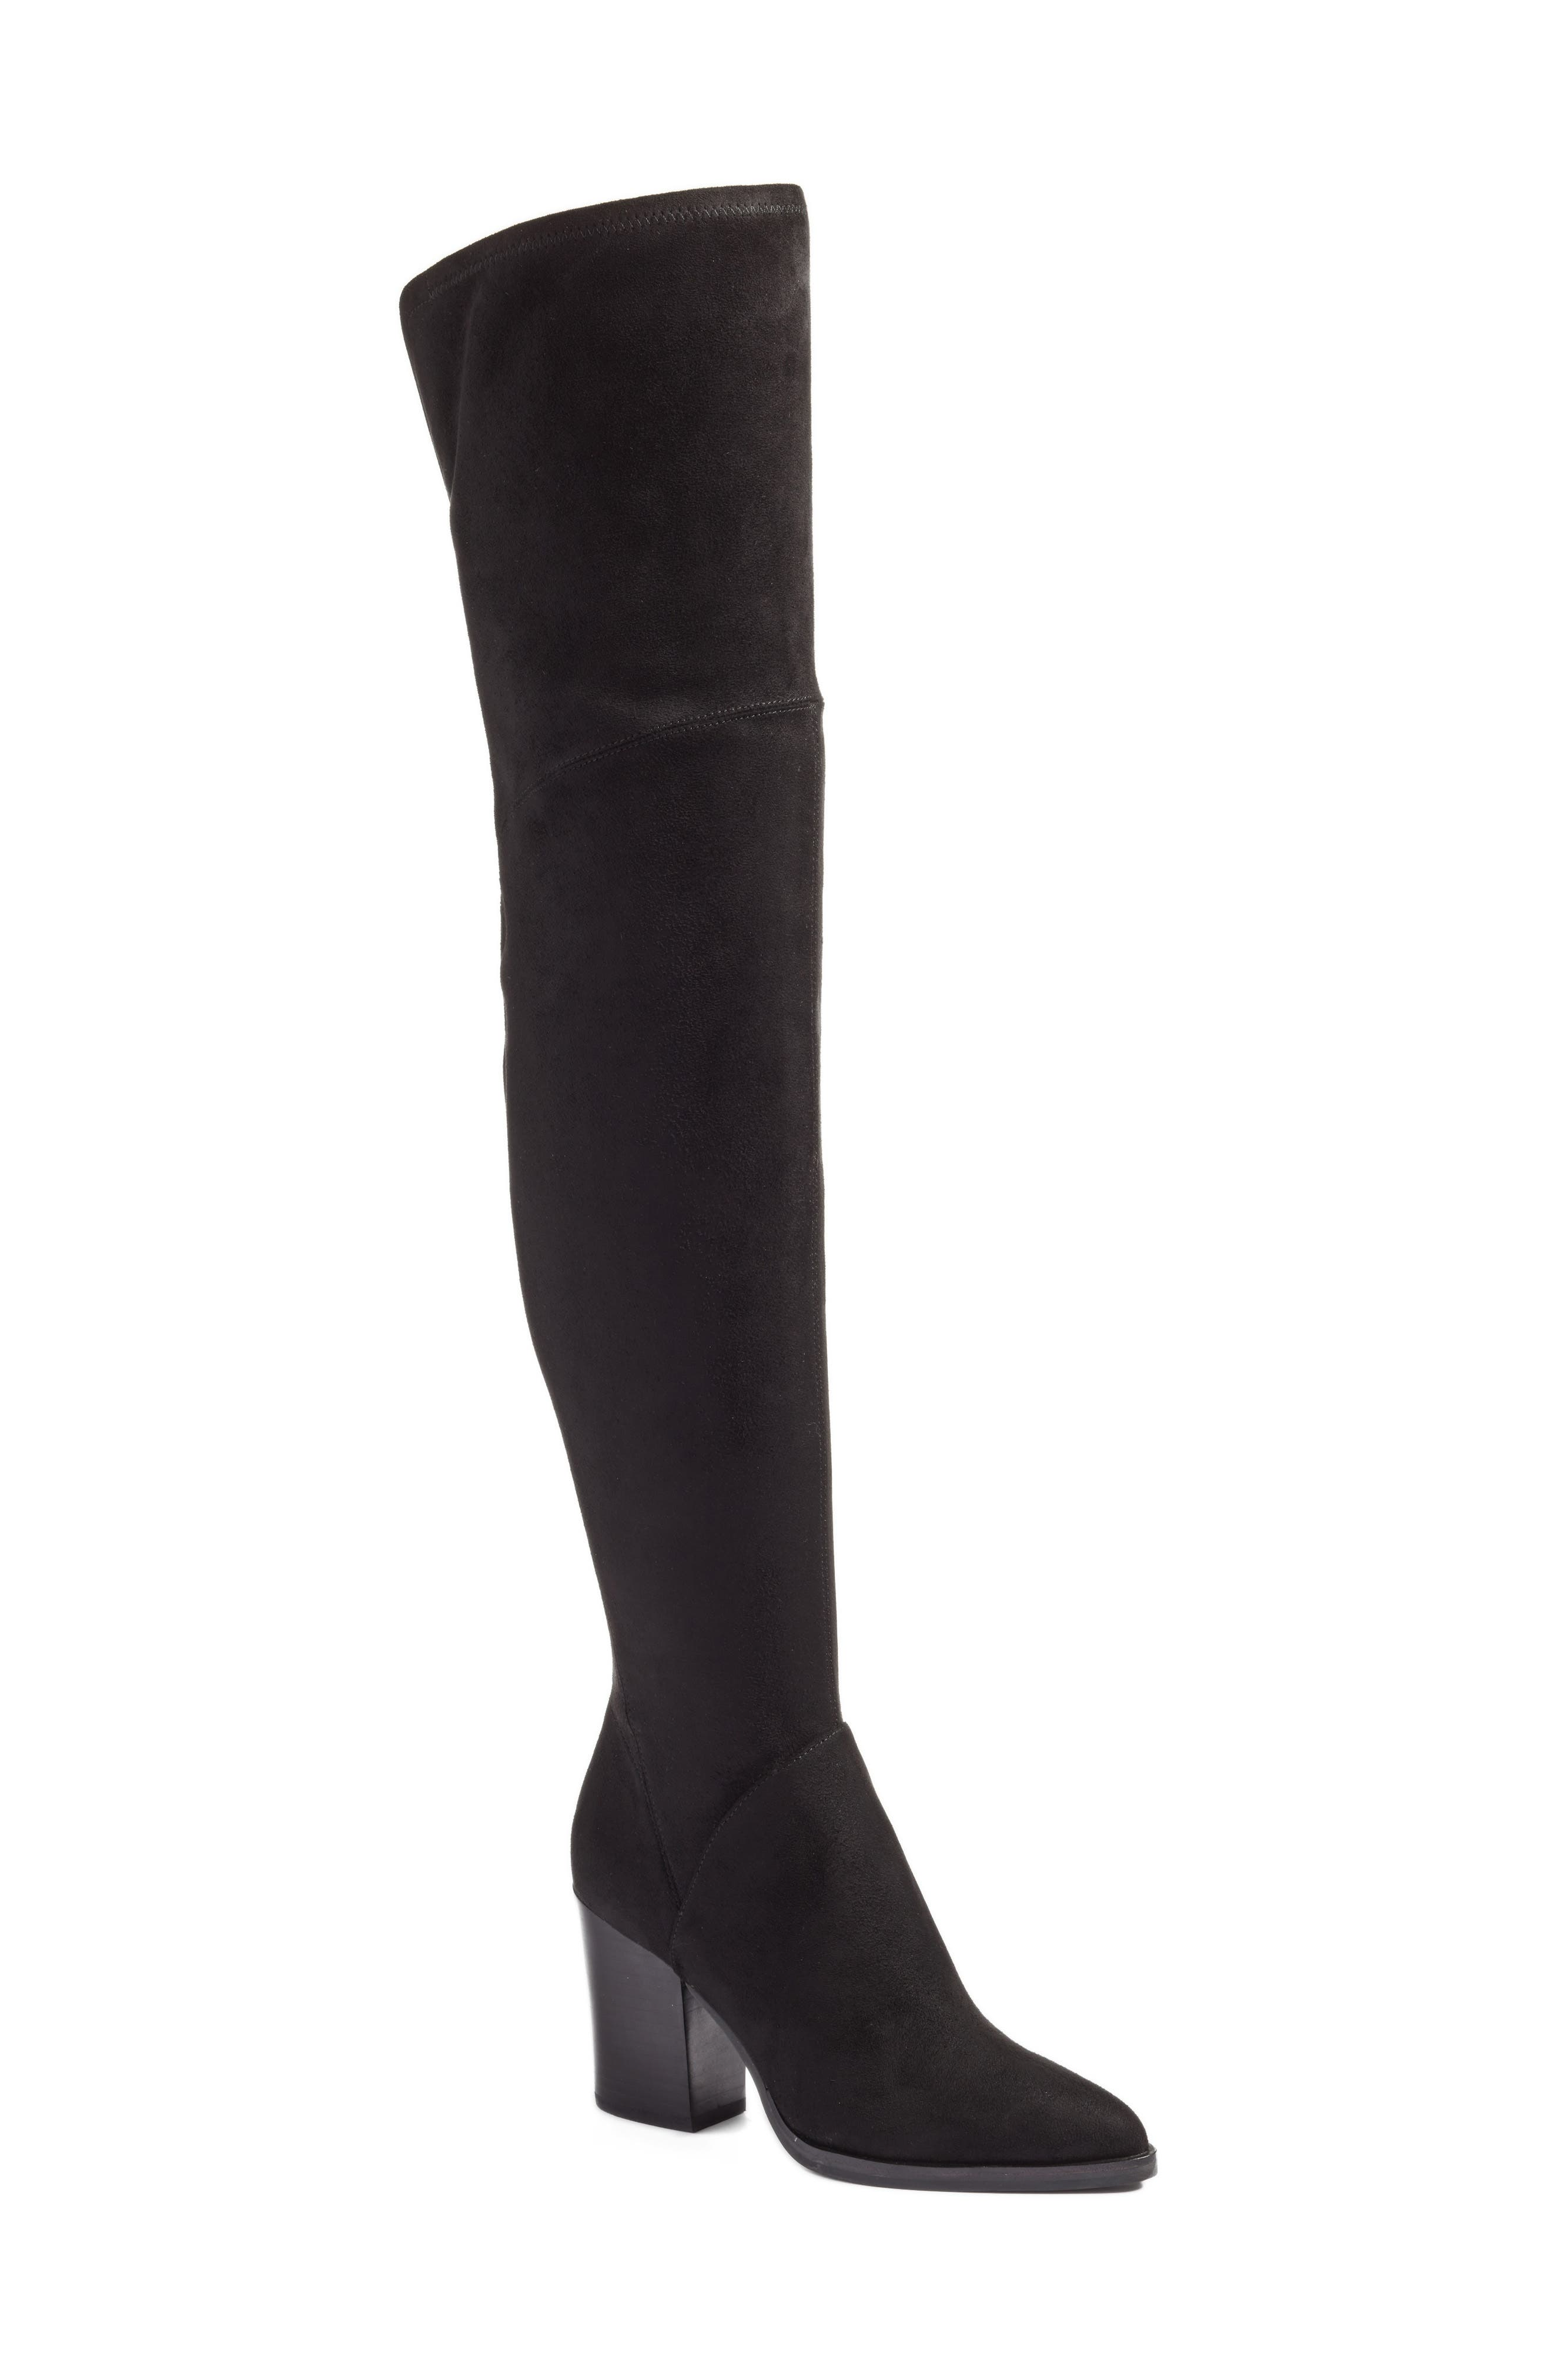 Alternate Image 1 Selected - Marc Fisher LTD Arrine Over the Knee Boot (Women)